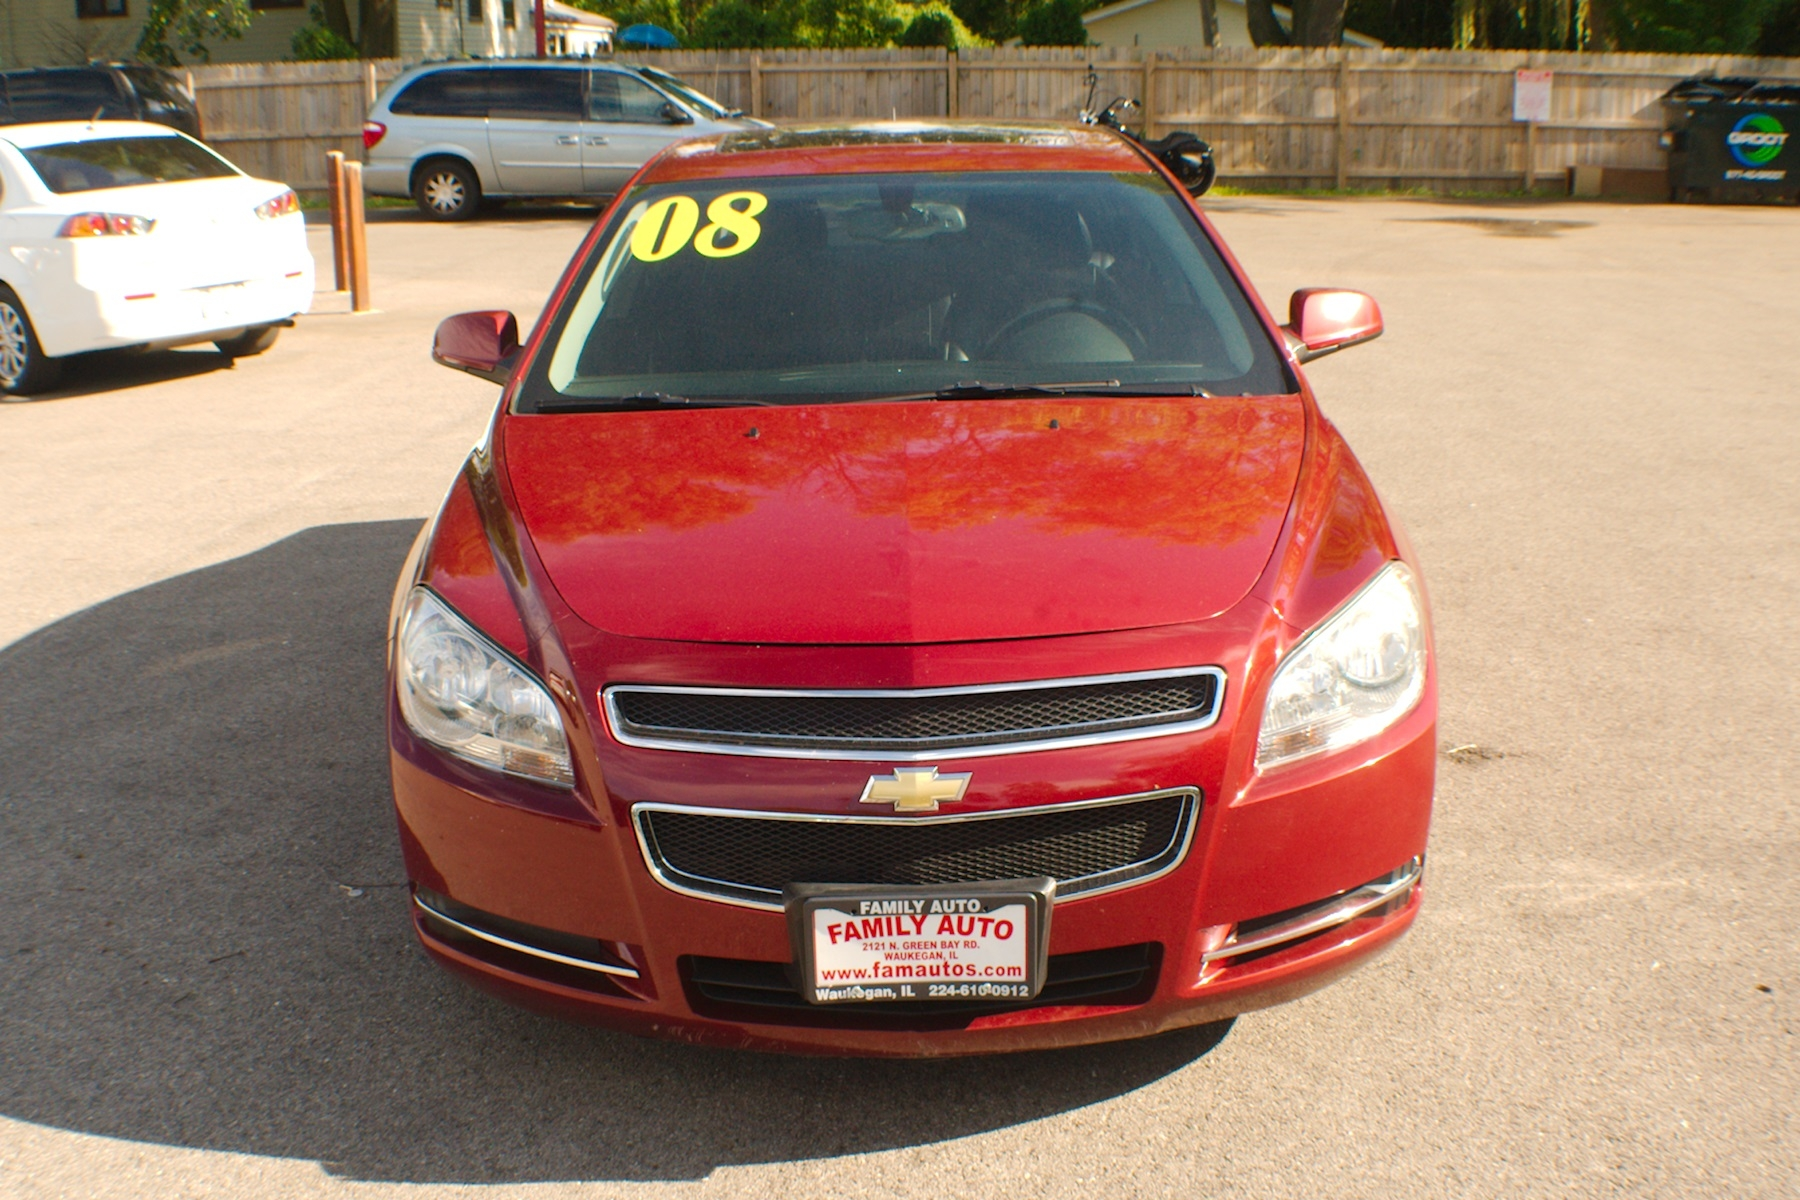 2008 Chevrolet Malibu LT Red Used Sedan Sale Gurnee Kenosha Mchenry Chicago Illinois